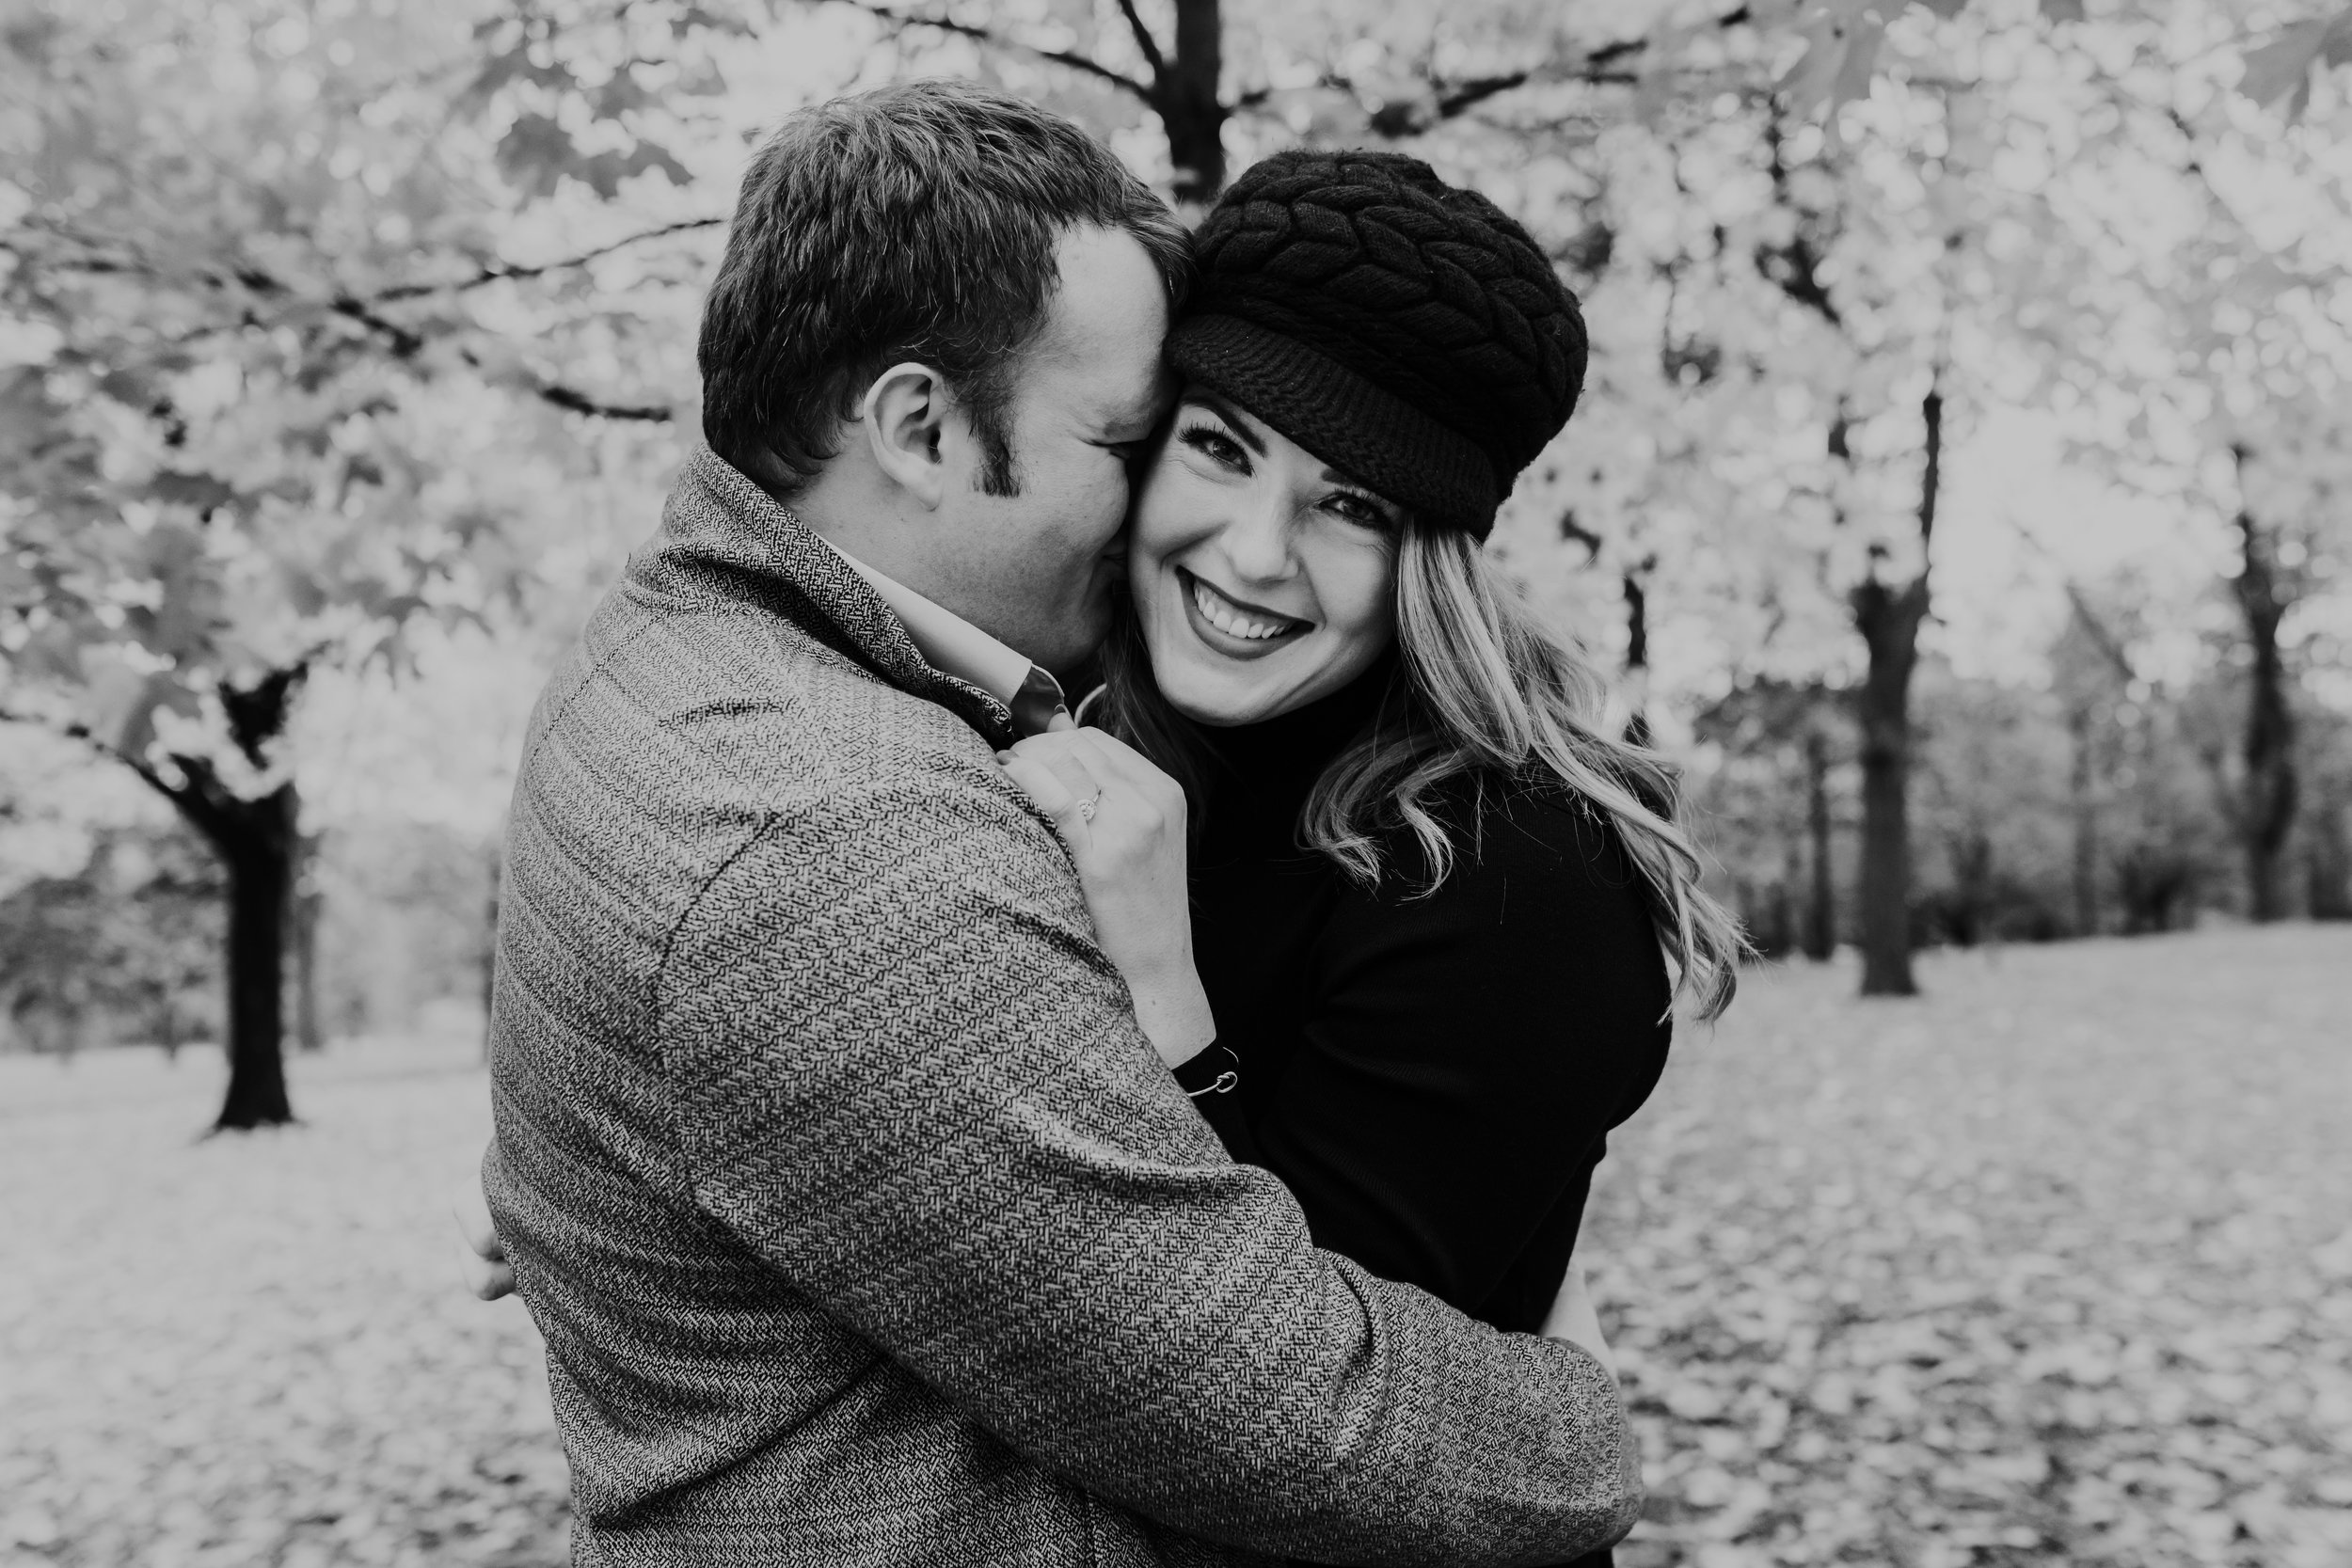 Meghan & Igor - Engaged - Nathaniel Jensen Photography - Omaha Nebraska Wedding Photograper-38.jpg